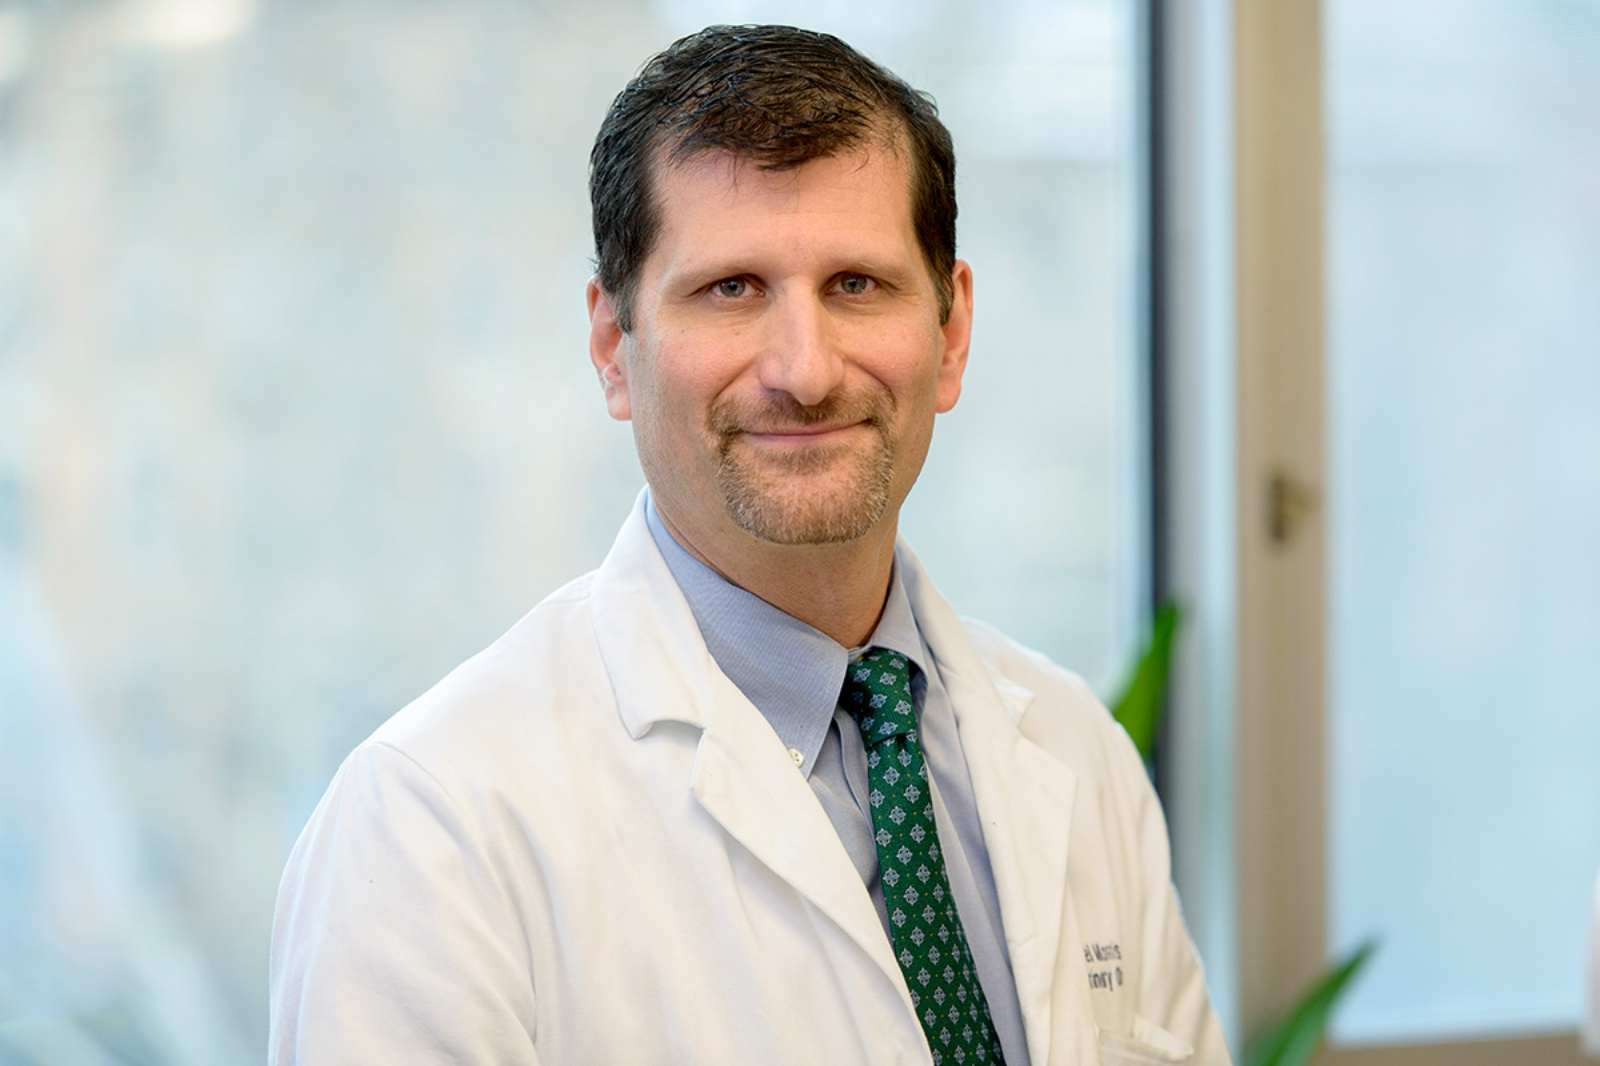 Dr. Michael Morris, clinical investigator with the Genitourinary Oncology Service at Memorial Sloan Kettering Cancer Center